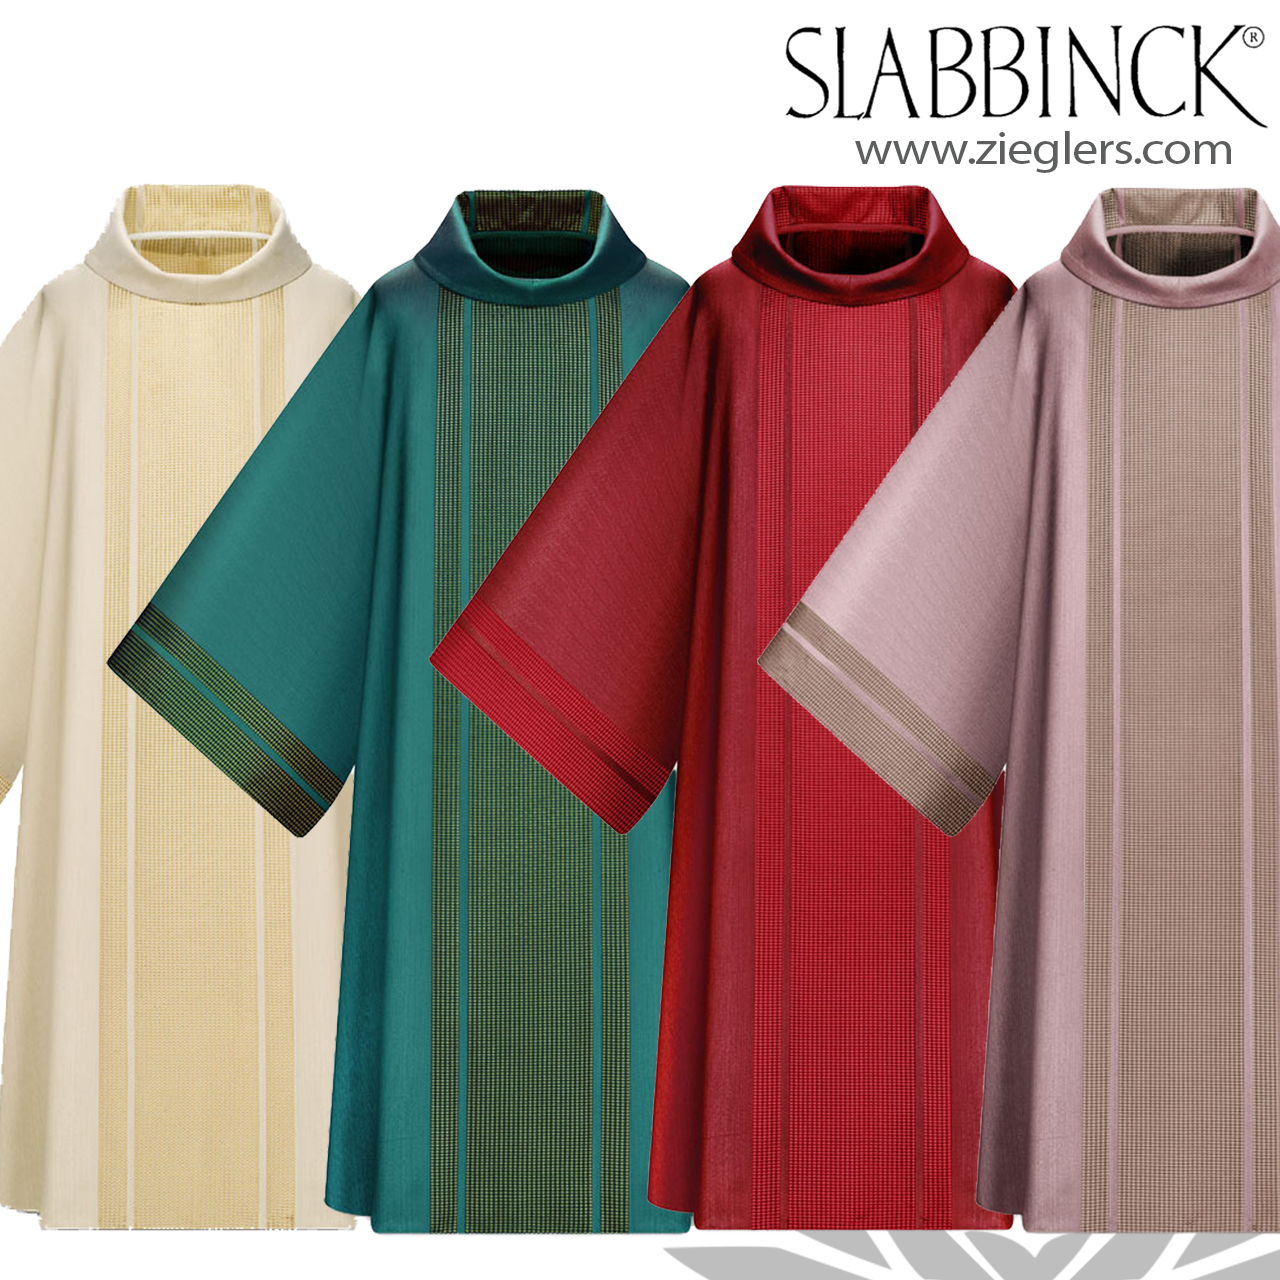 Dalmatic | Tone on Tone | 5 Colors | Polyester | Roll Collar | Slabbinck |  75175